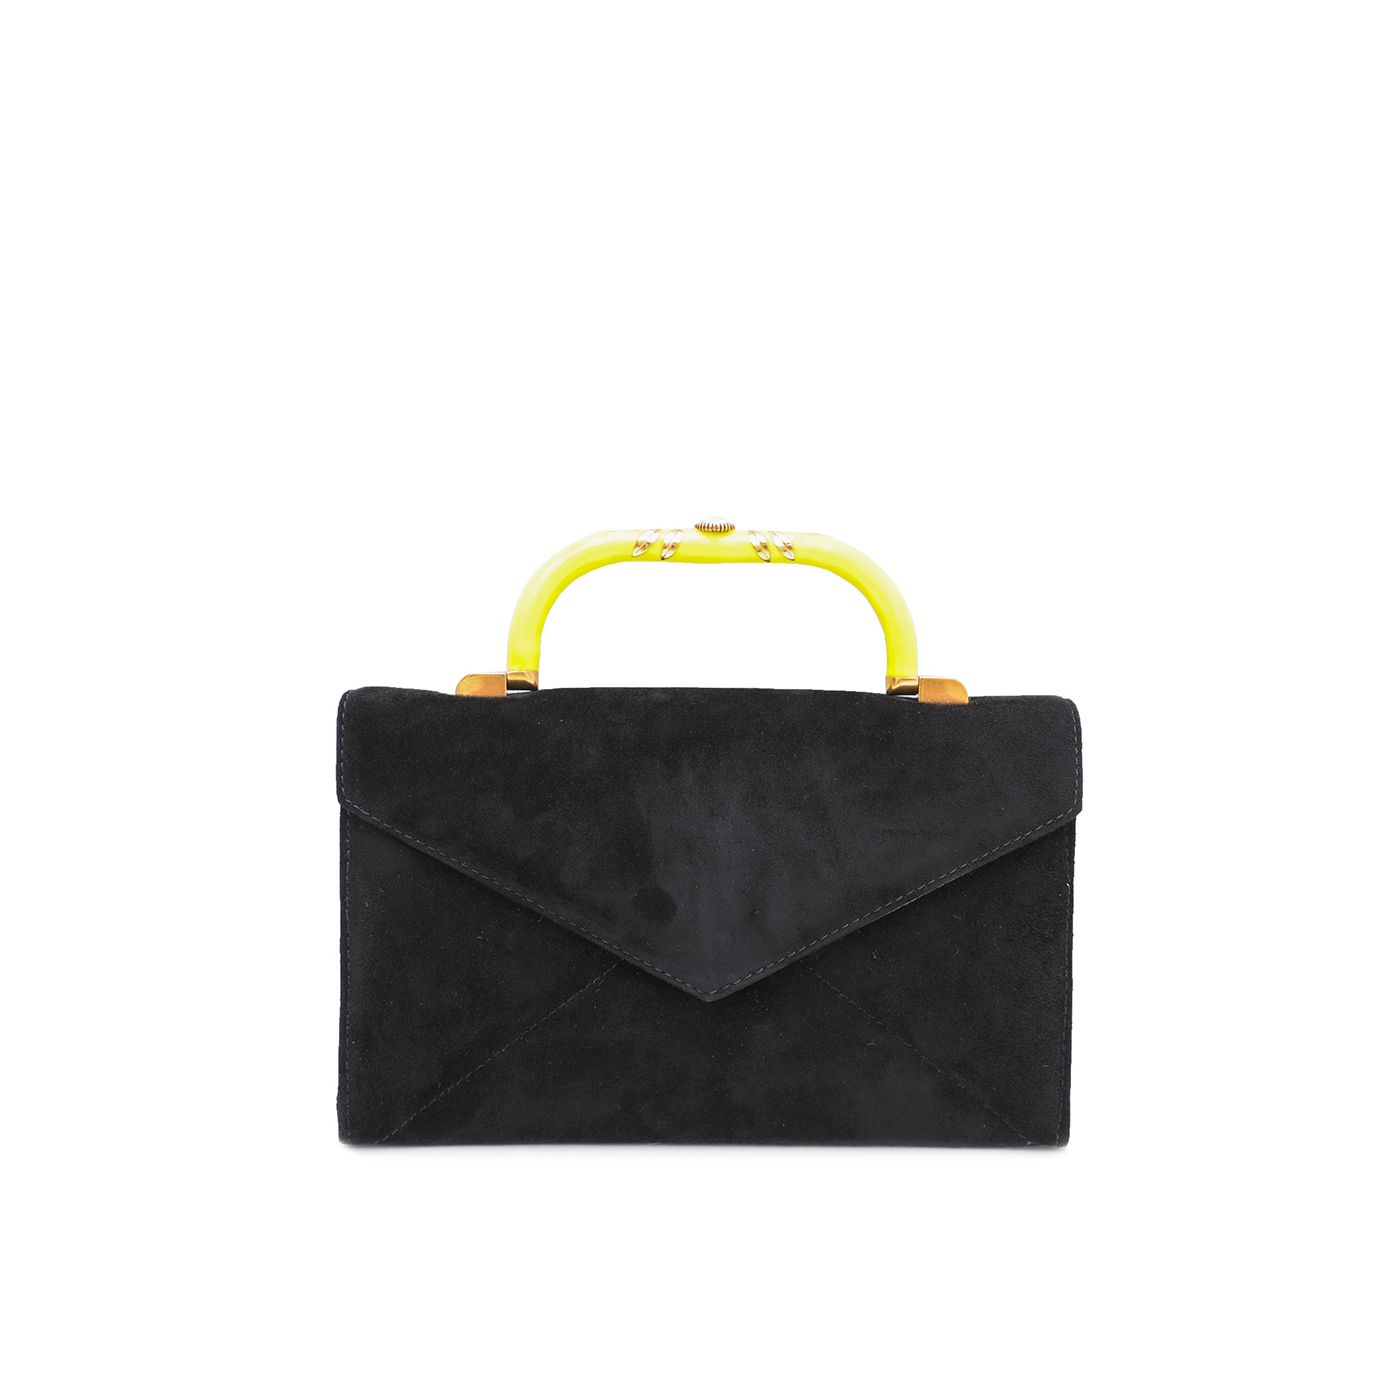 Fendi Black Suede Enamel Top Handle Clutch